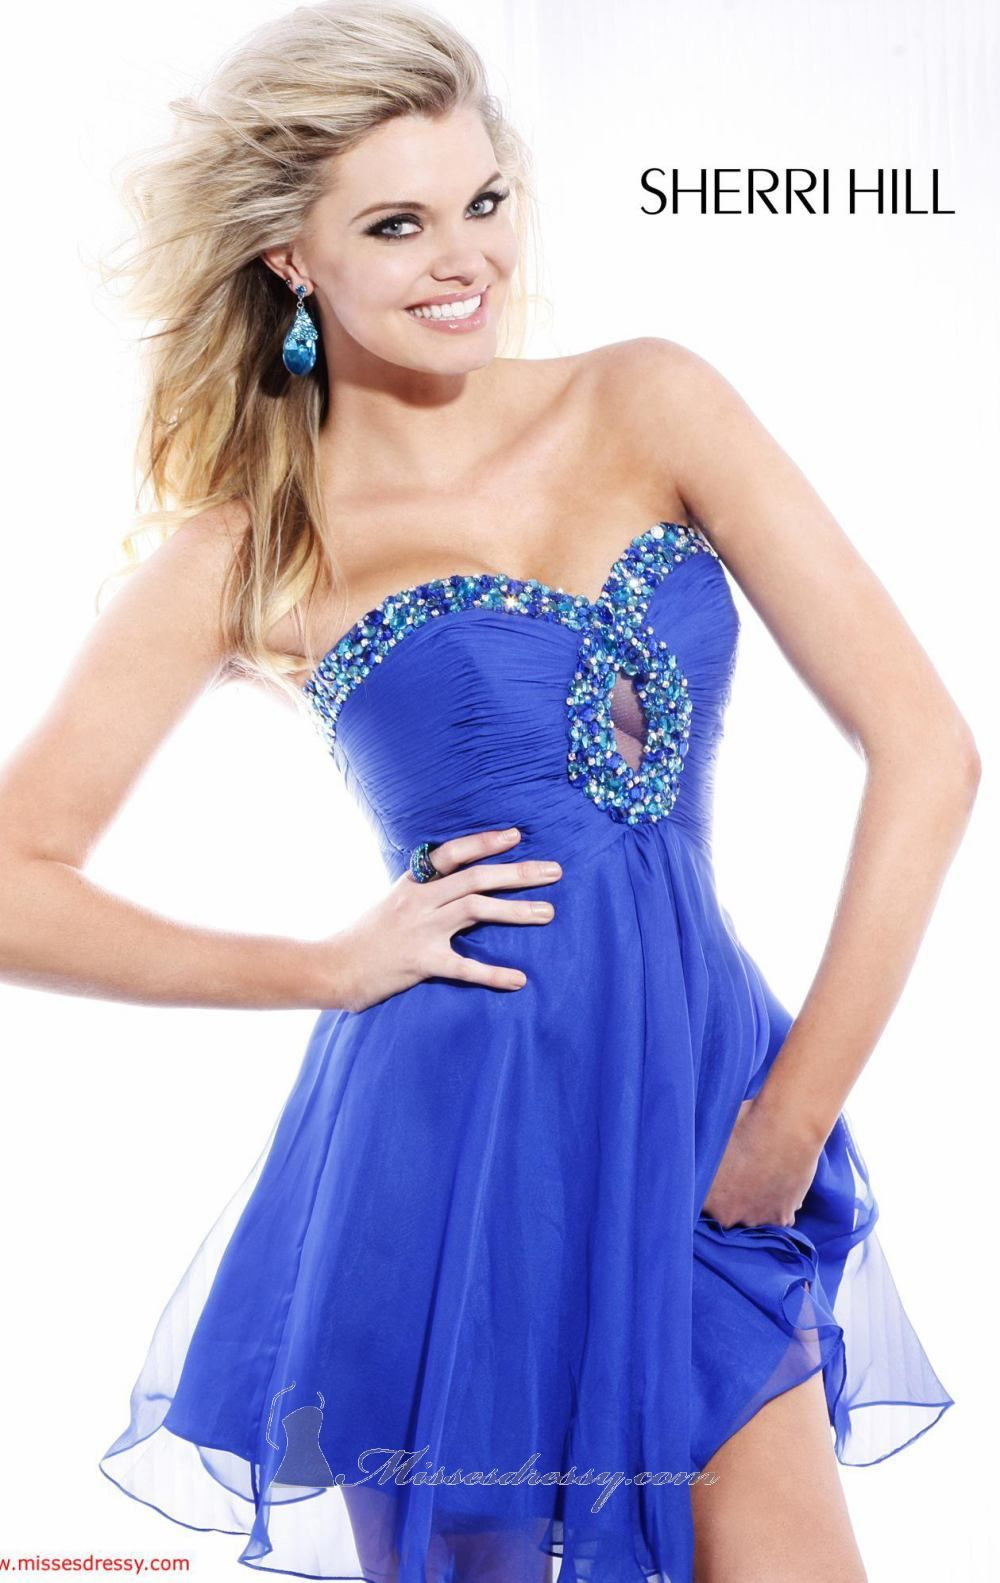 Cocktail dress with keyhole cutout by sherri hill red carpet